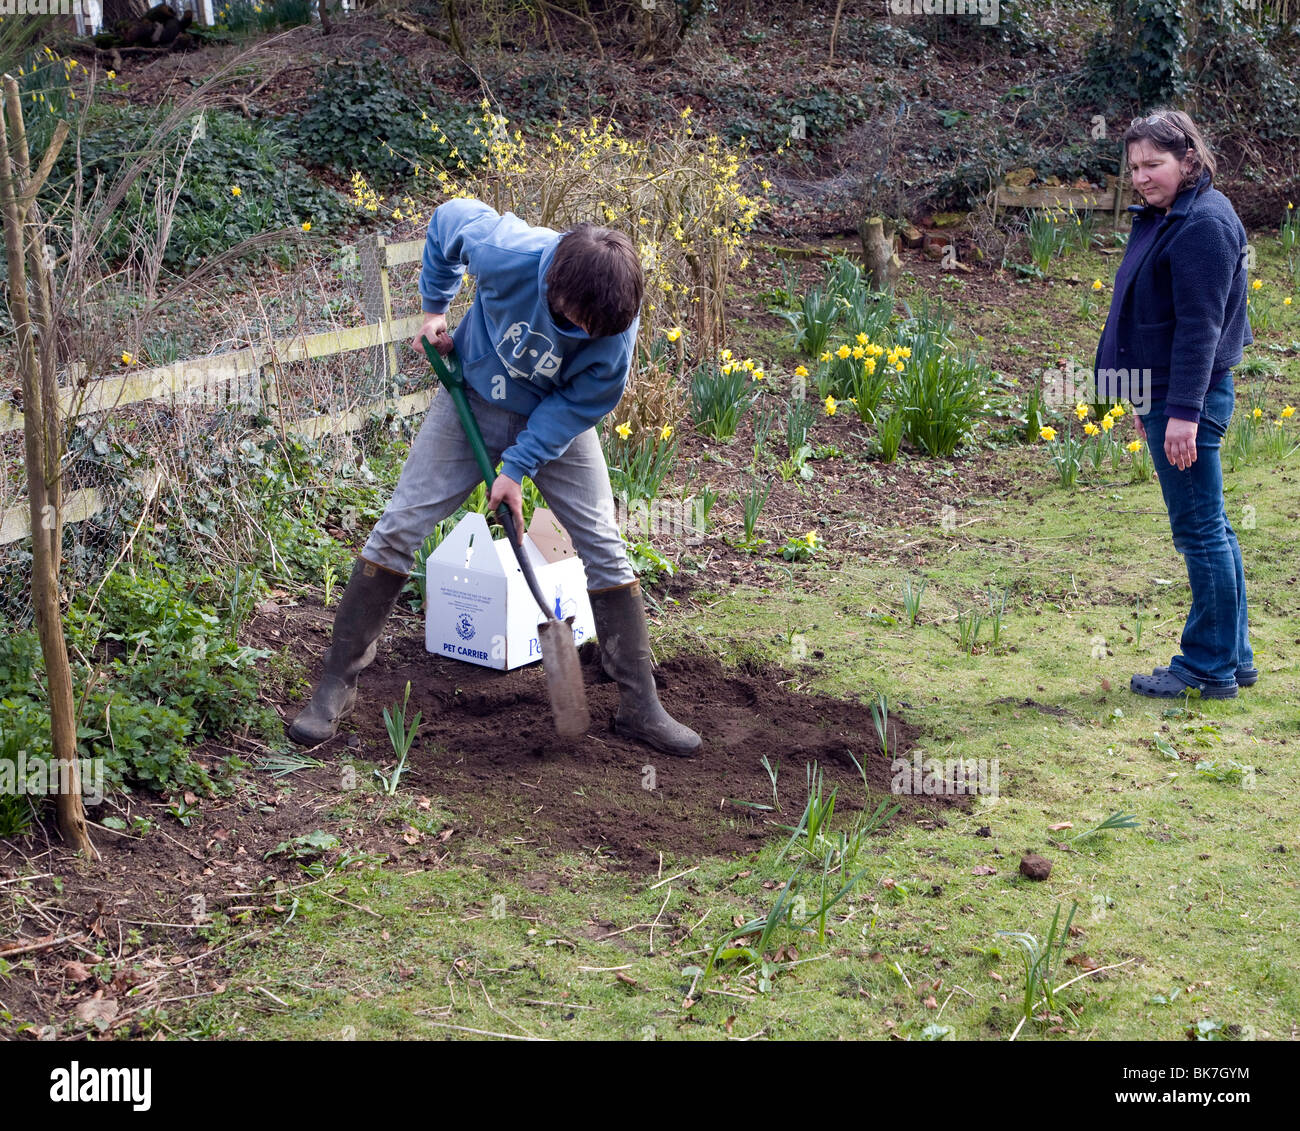 Model released teenage boy digging hole in garden to bury pet cat Stock Photo